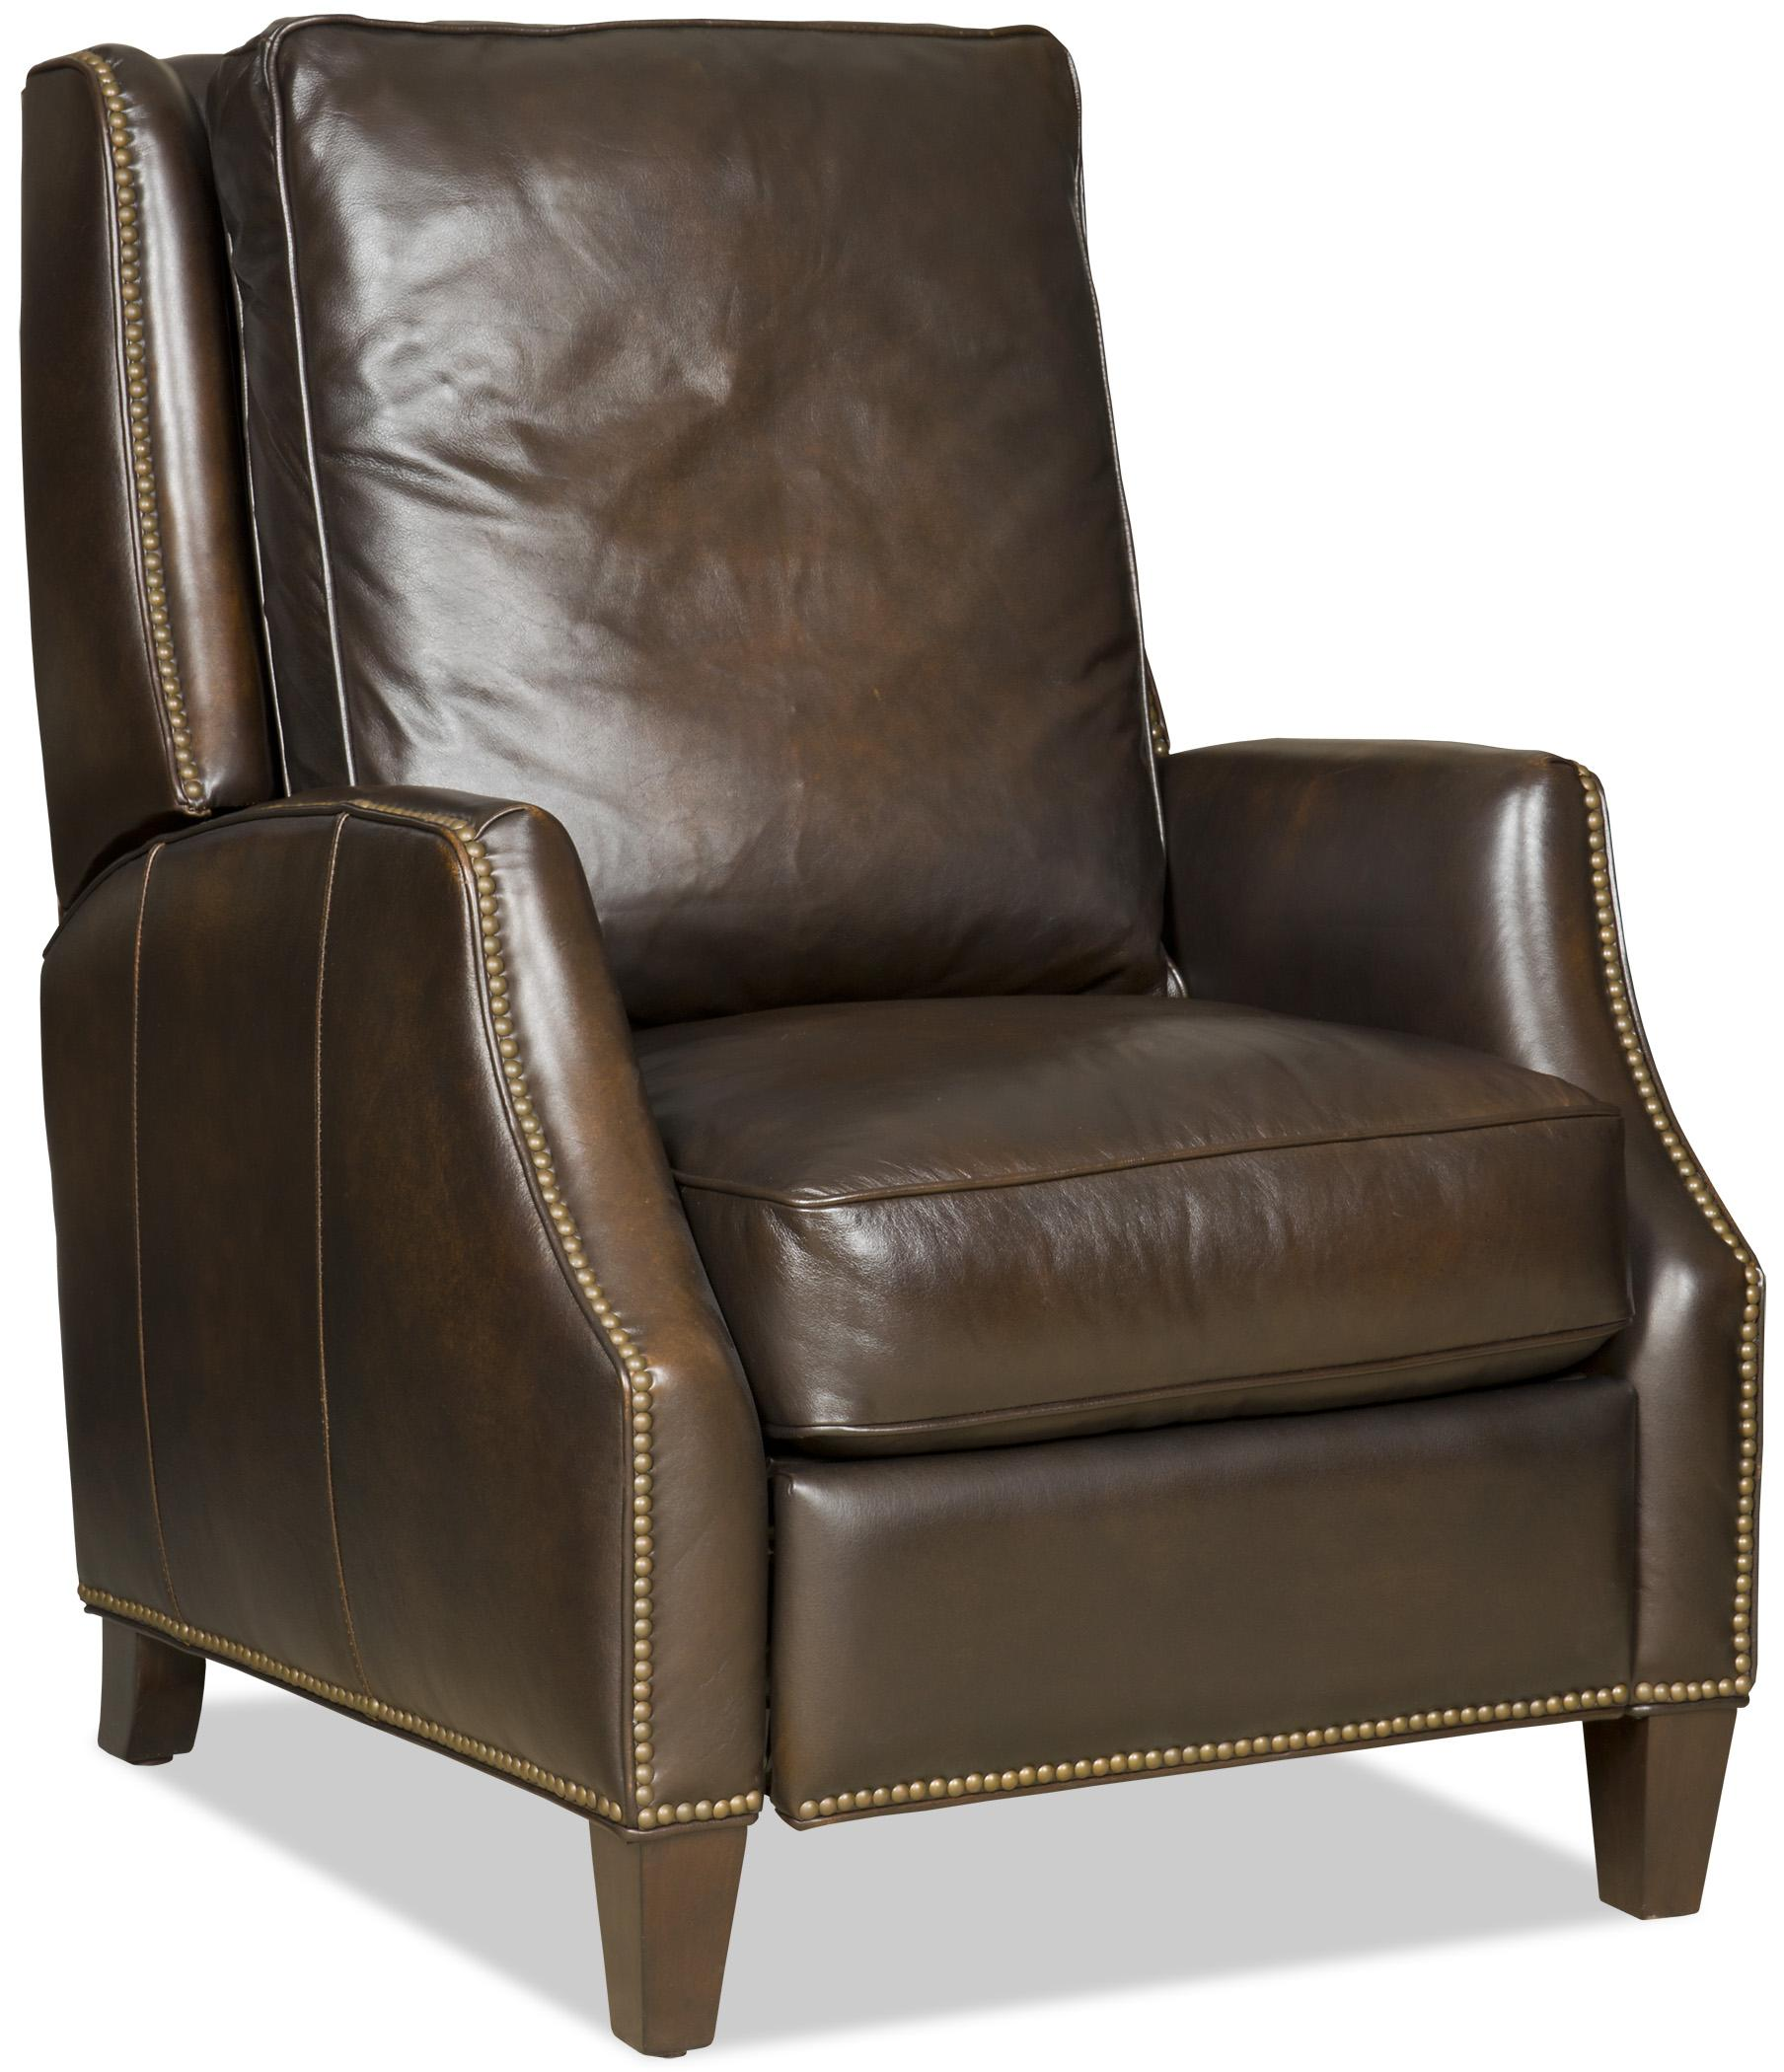 Hooker Furniture Reclining Chairs Recliner Chair - Item Number: RC260-086